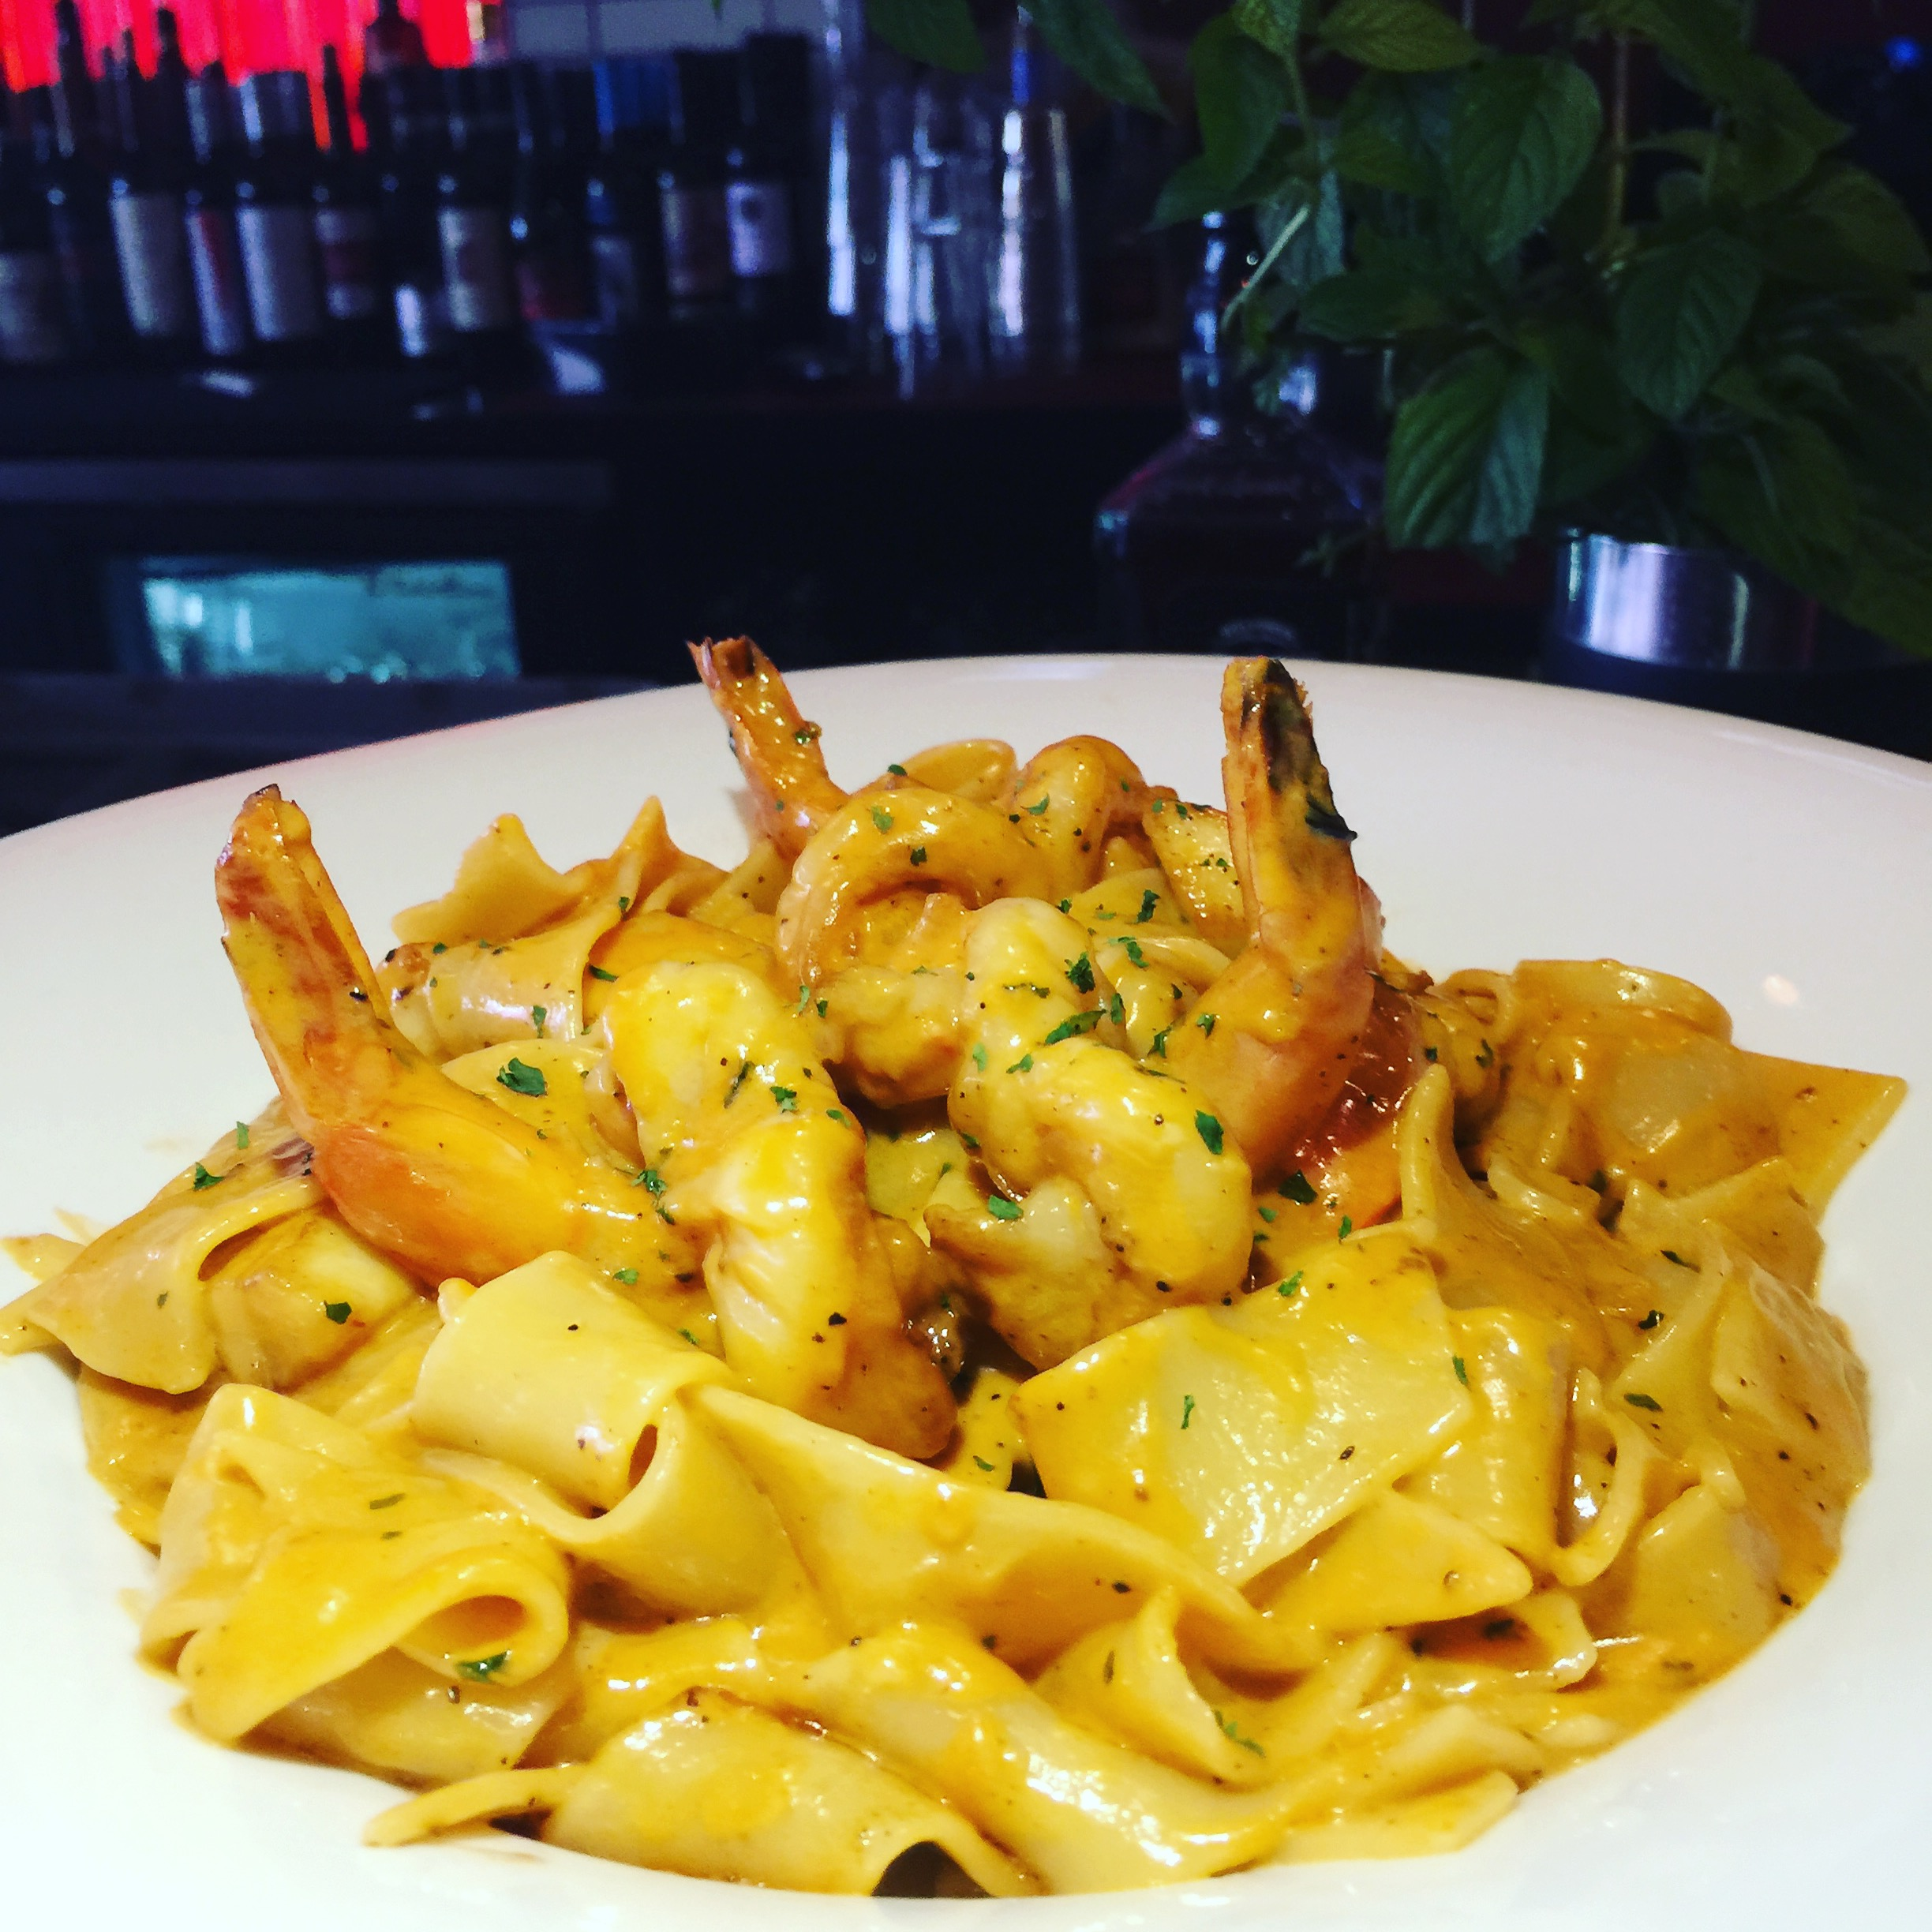 Pappardelle - in a lobster cream sauce with shrimp